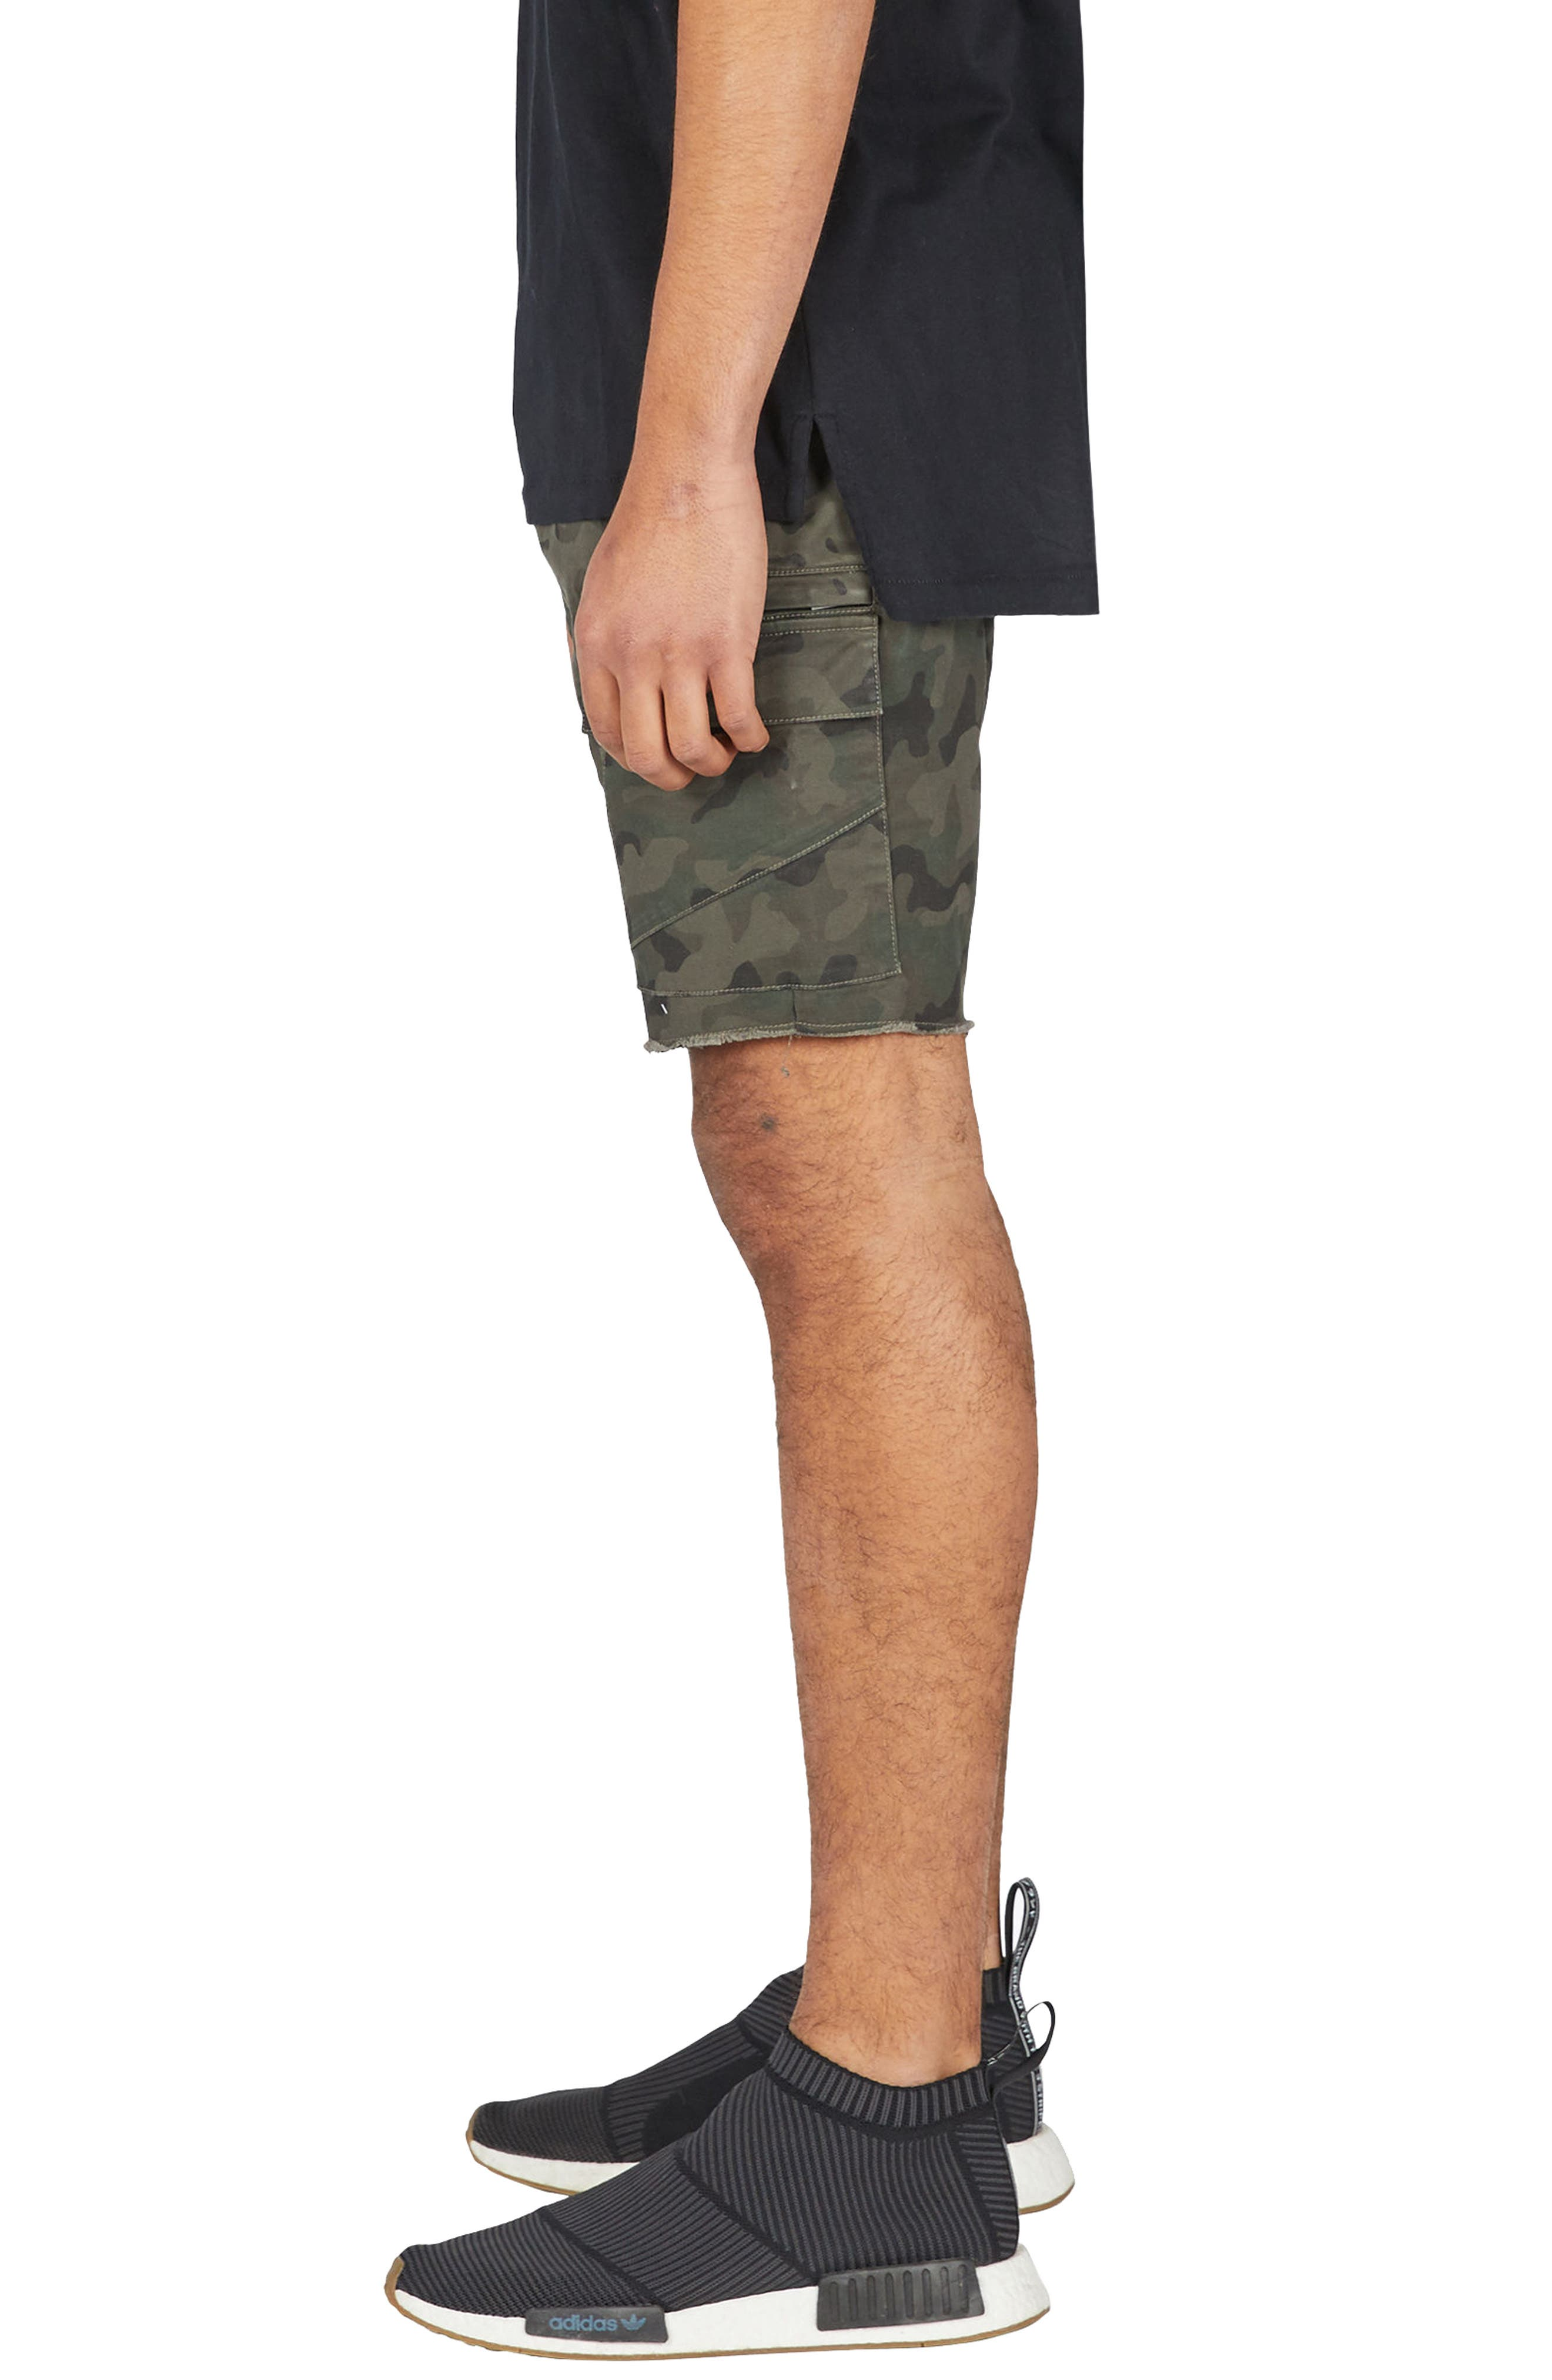 Sureshot Camo Cargo Shorts,                             Alternate thumbnail 3, color,                             302